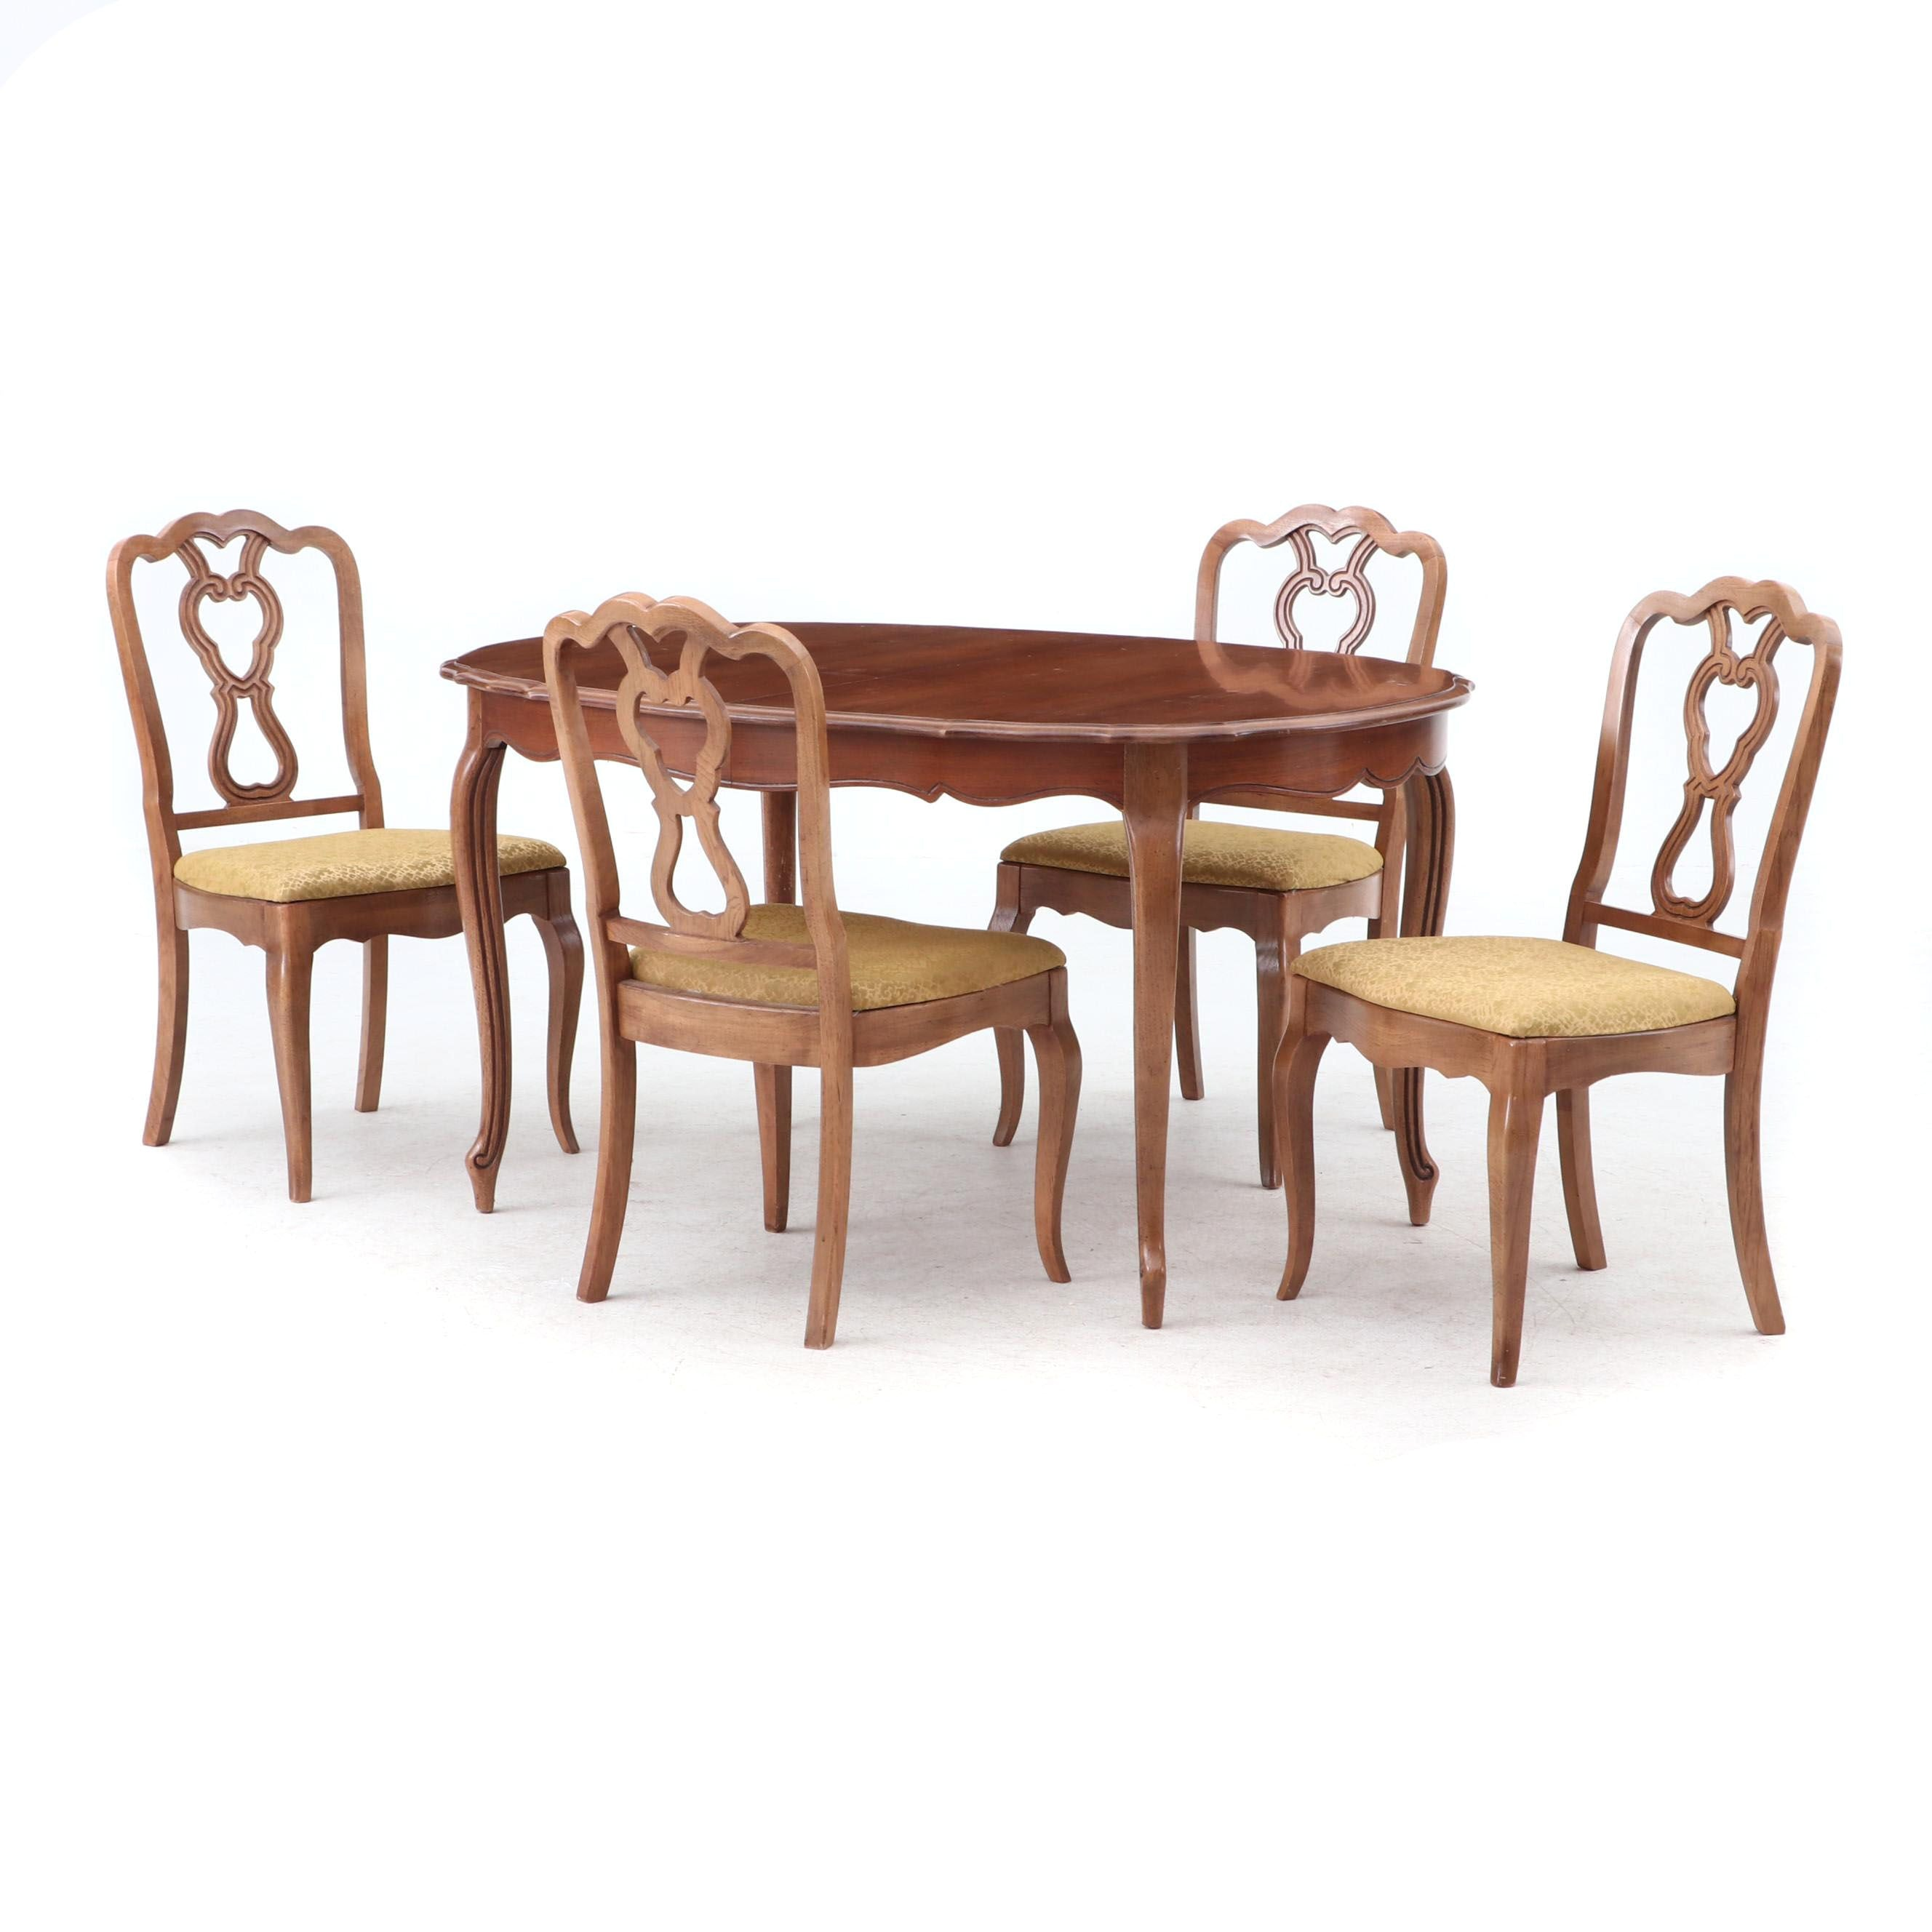 1962 Thomasville French Provincial Style Dining Table with Four Chairs